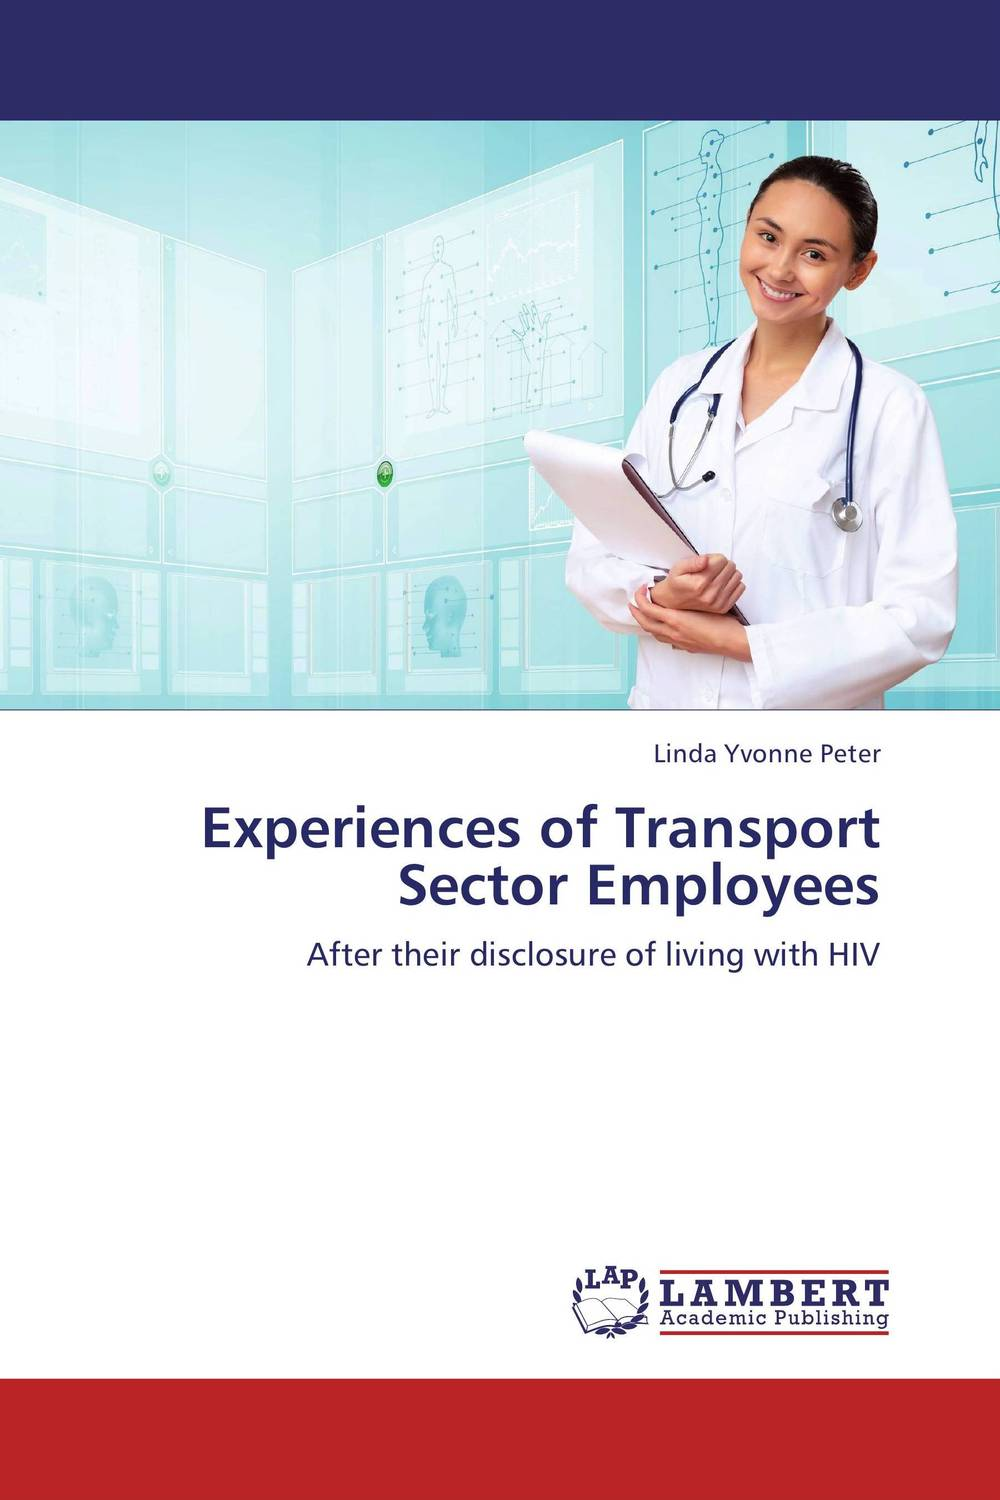 Experiences of Transport Sector Employees